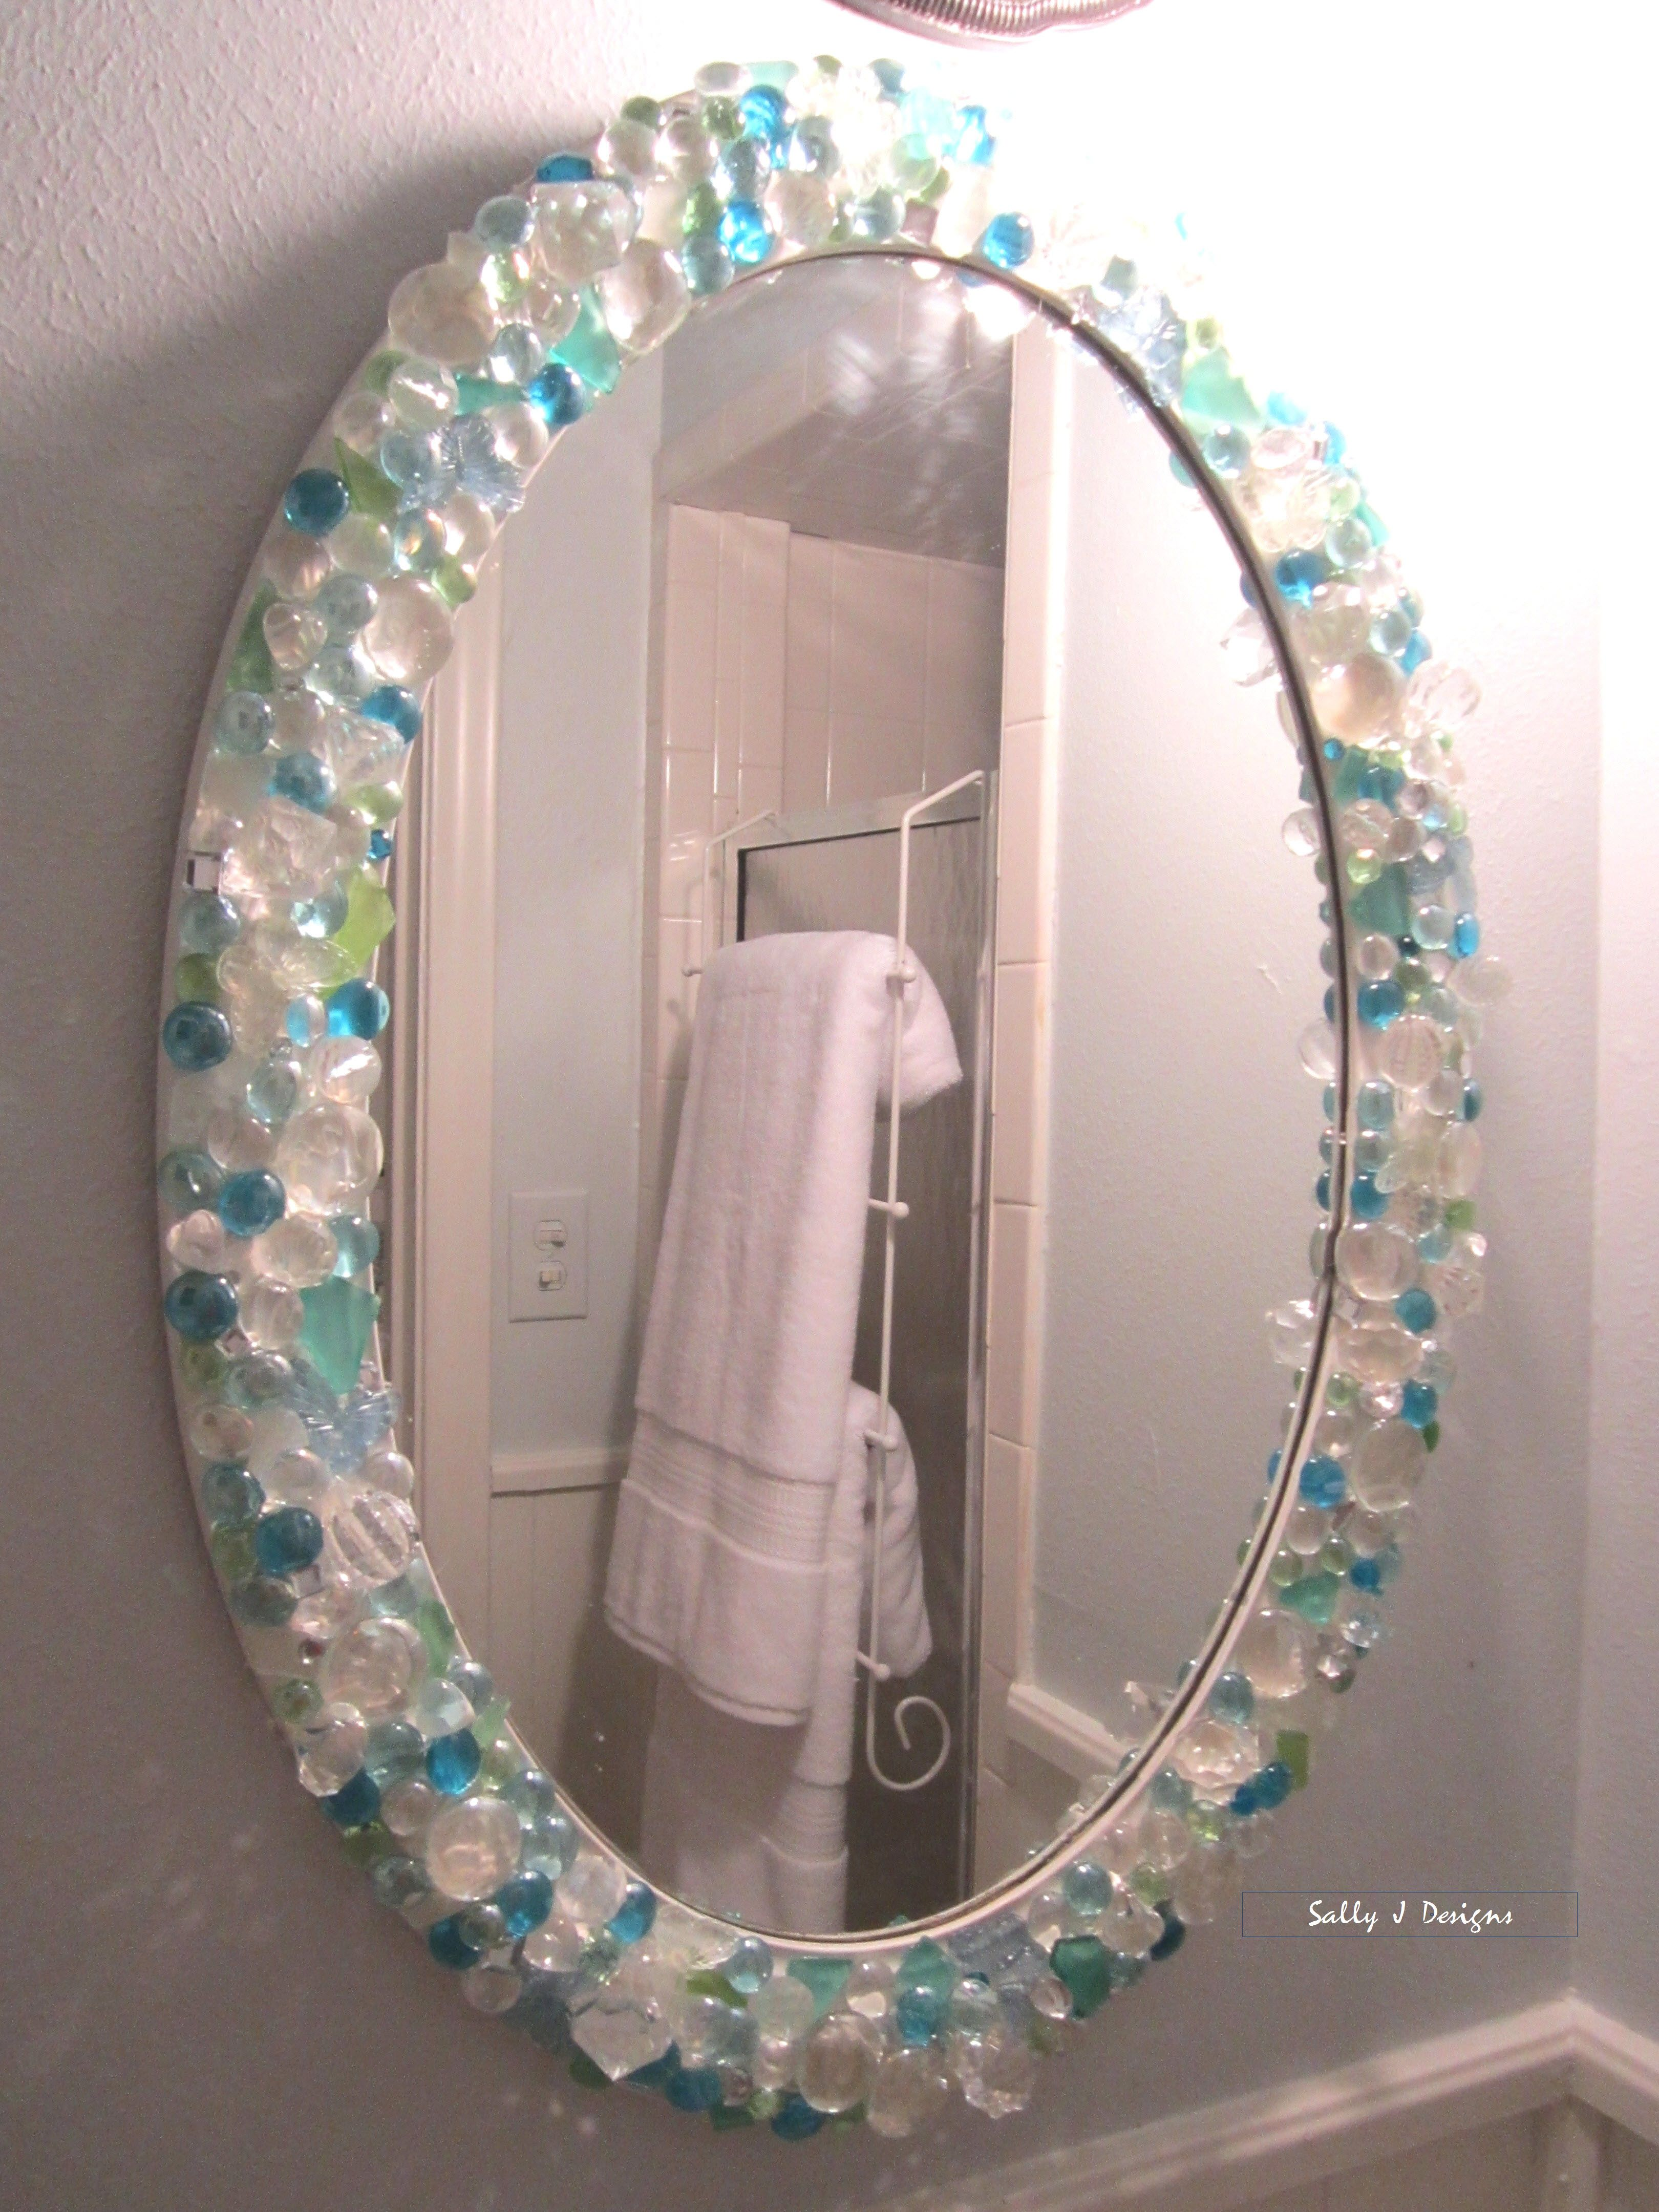 Diy Picture Frame With Glass Mirror In Small Bathroom Is A Diy With Sea Glass Crystals